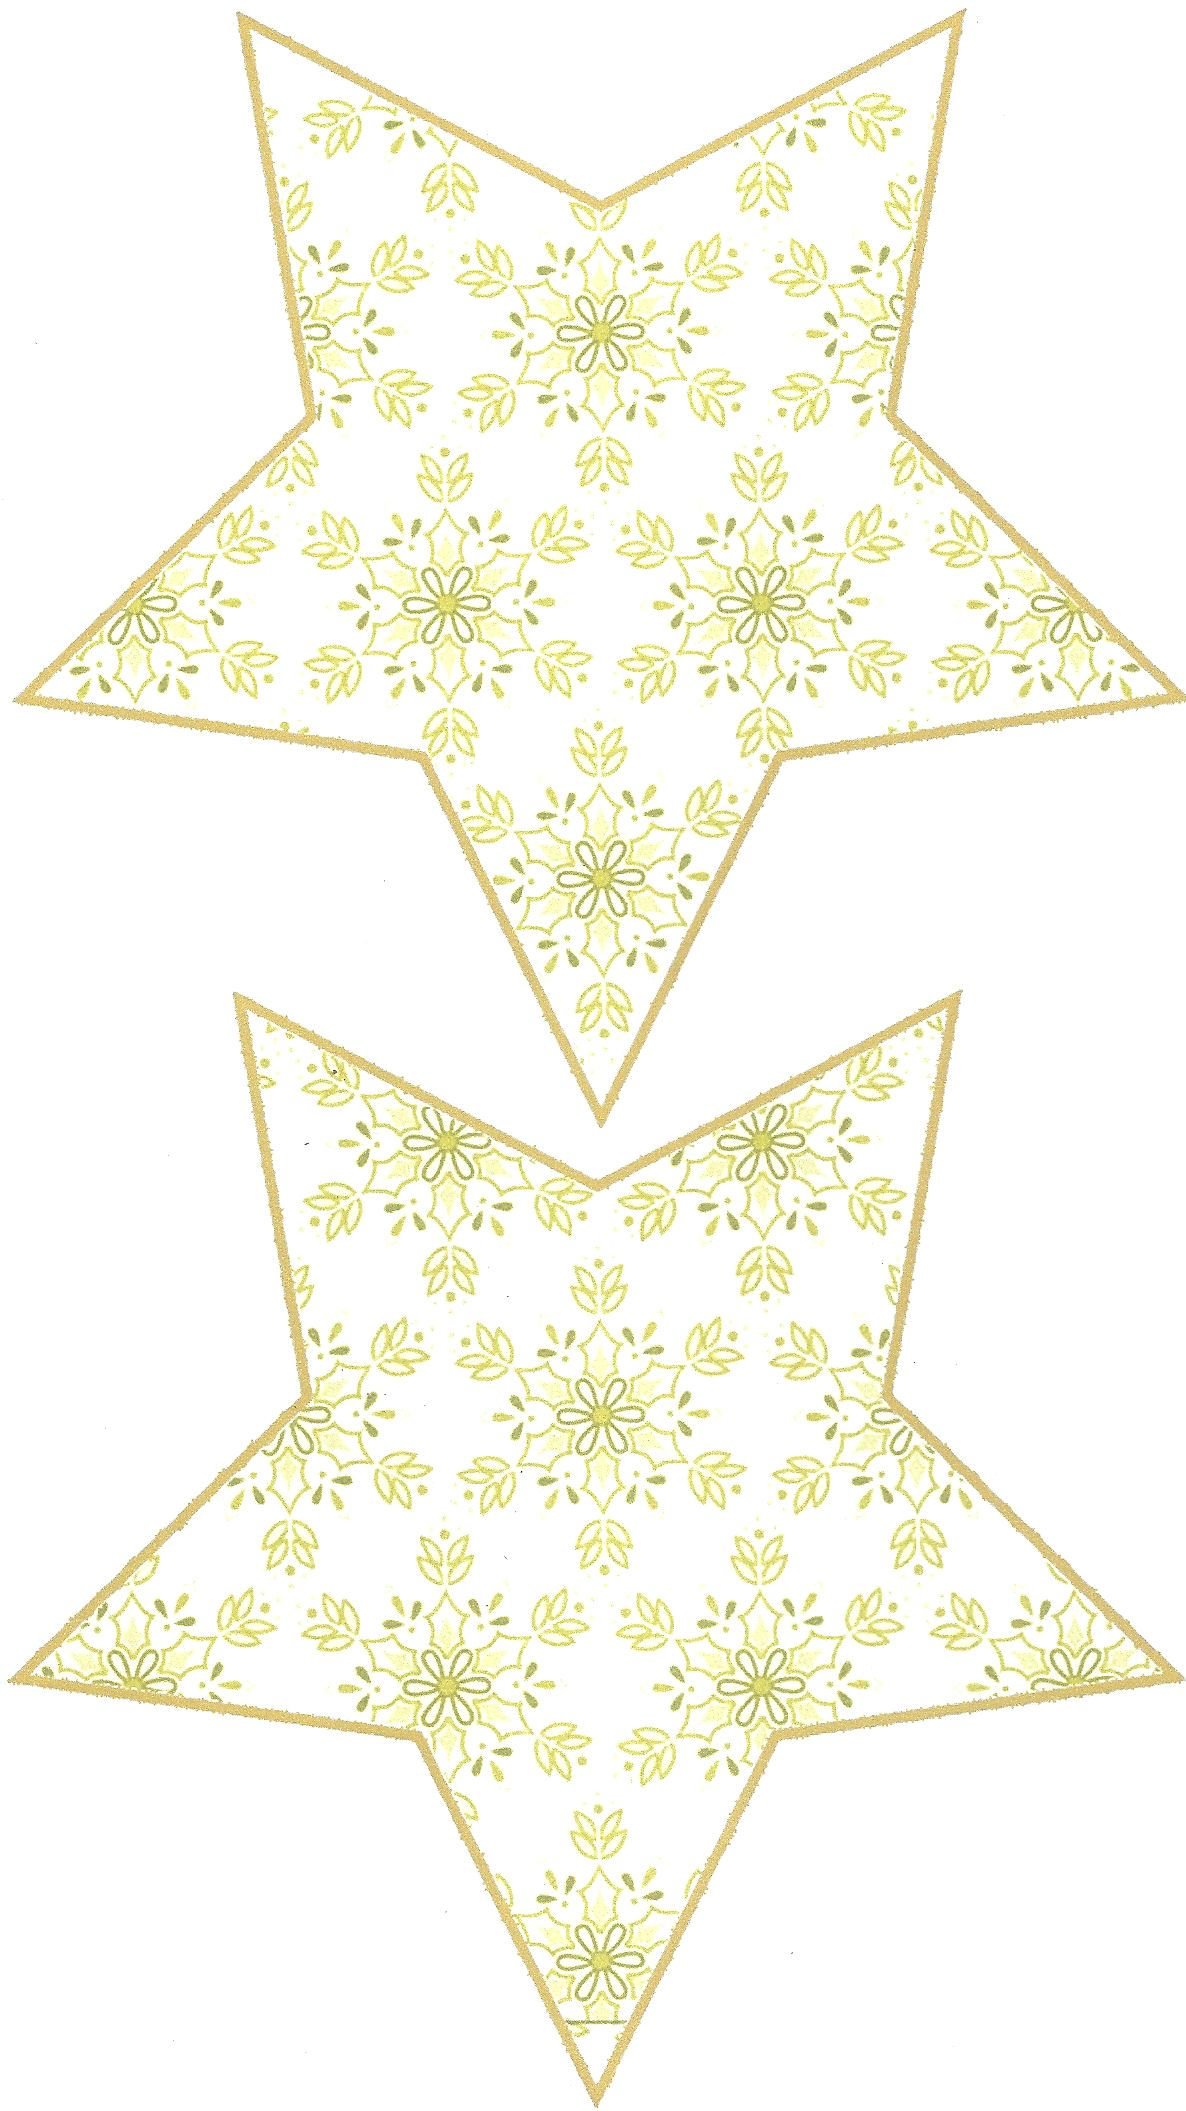 Free Printable Patterns For Making A 3d Shabby Chic 5 Point Christmas Star Ornament From Your Own Printer U Paper Ornaments Printable Patterns Christmas Star